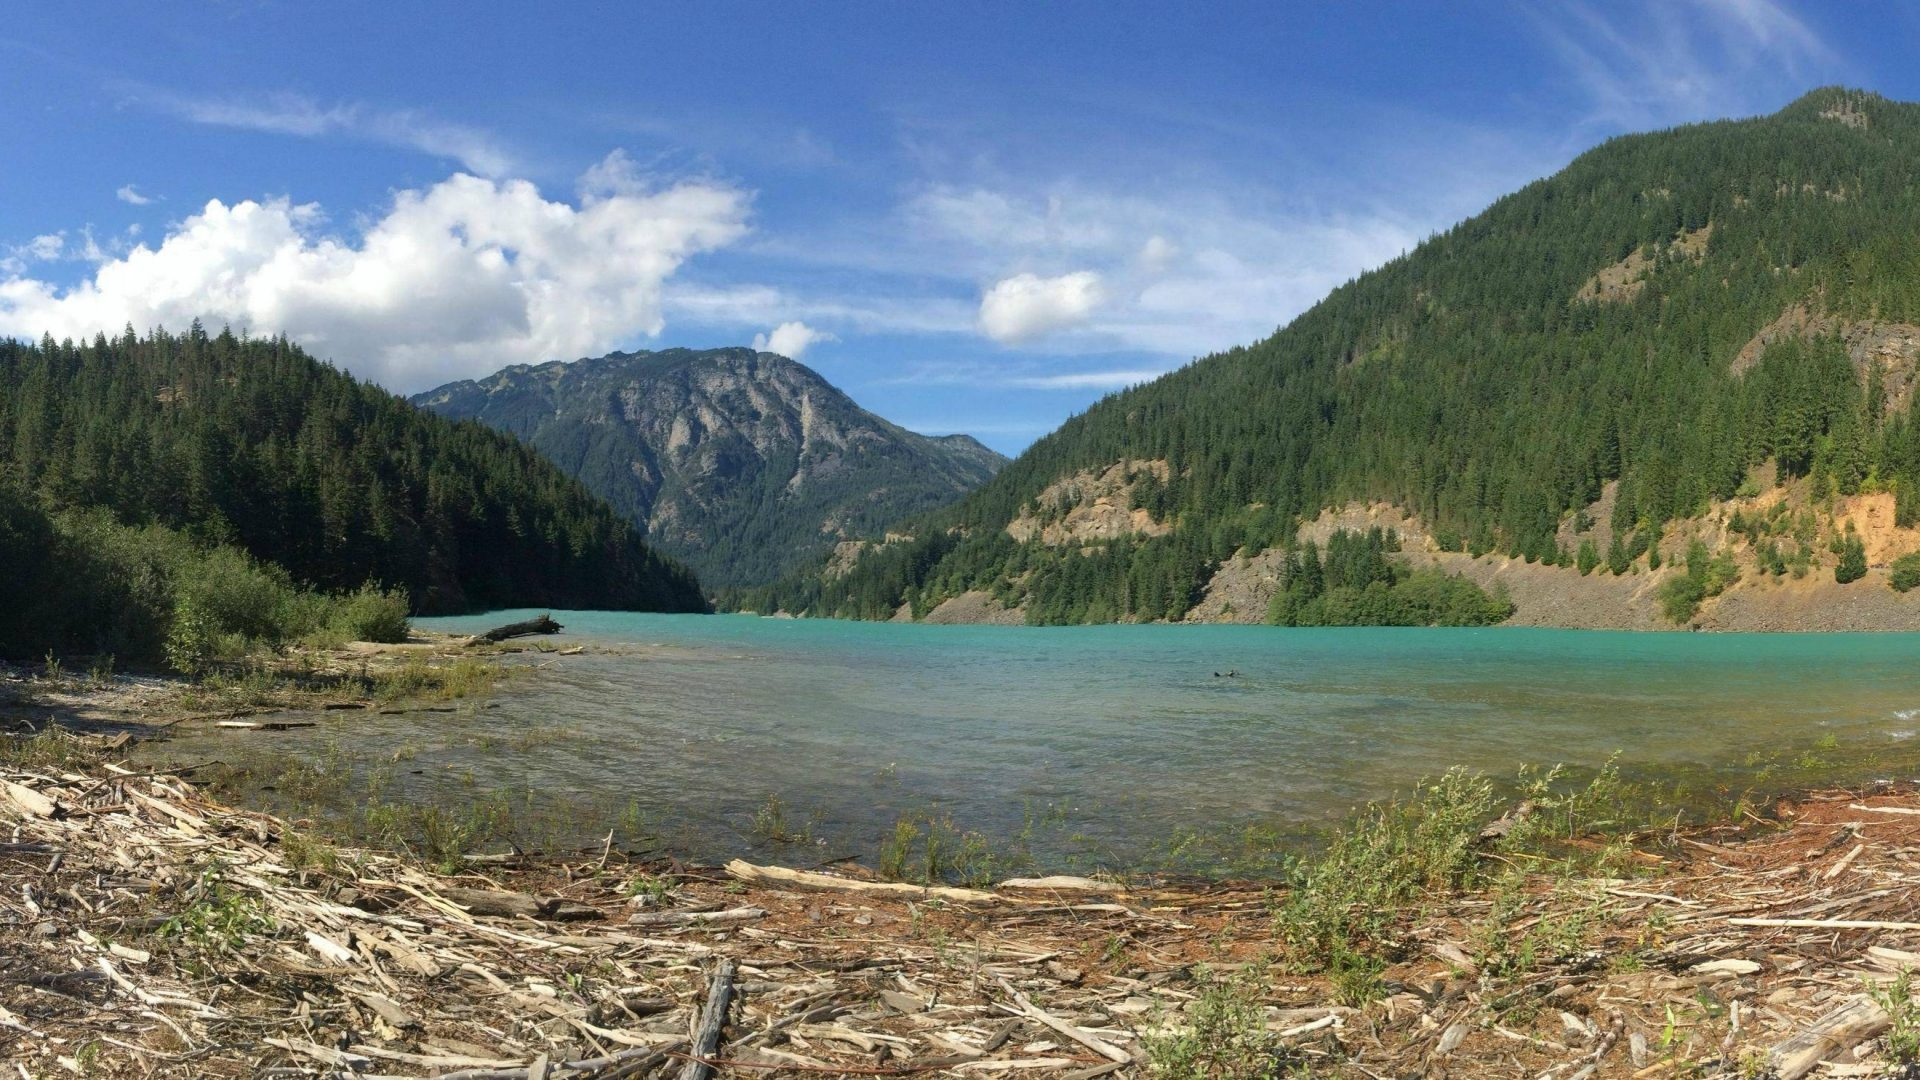 Cascades National Park Cool Mountains Lake Nature Fun - Mount Scenery , HD Wallpaper & Backgrounds